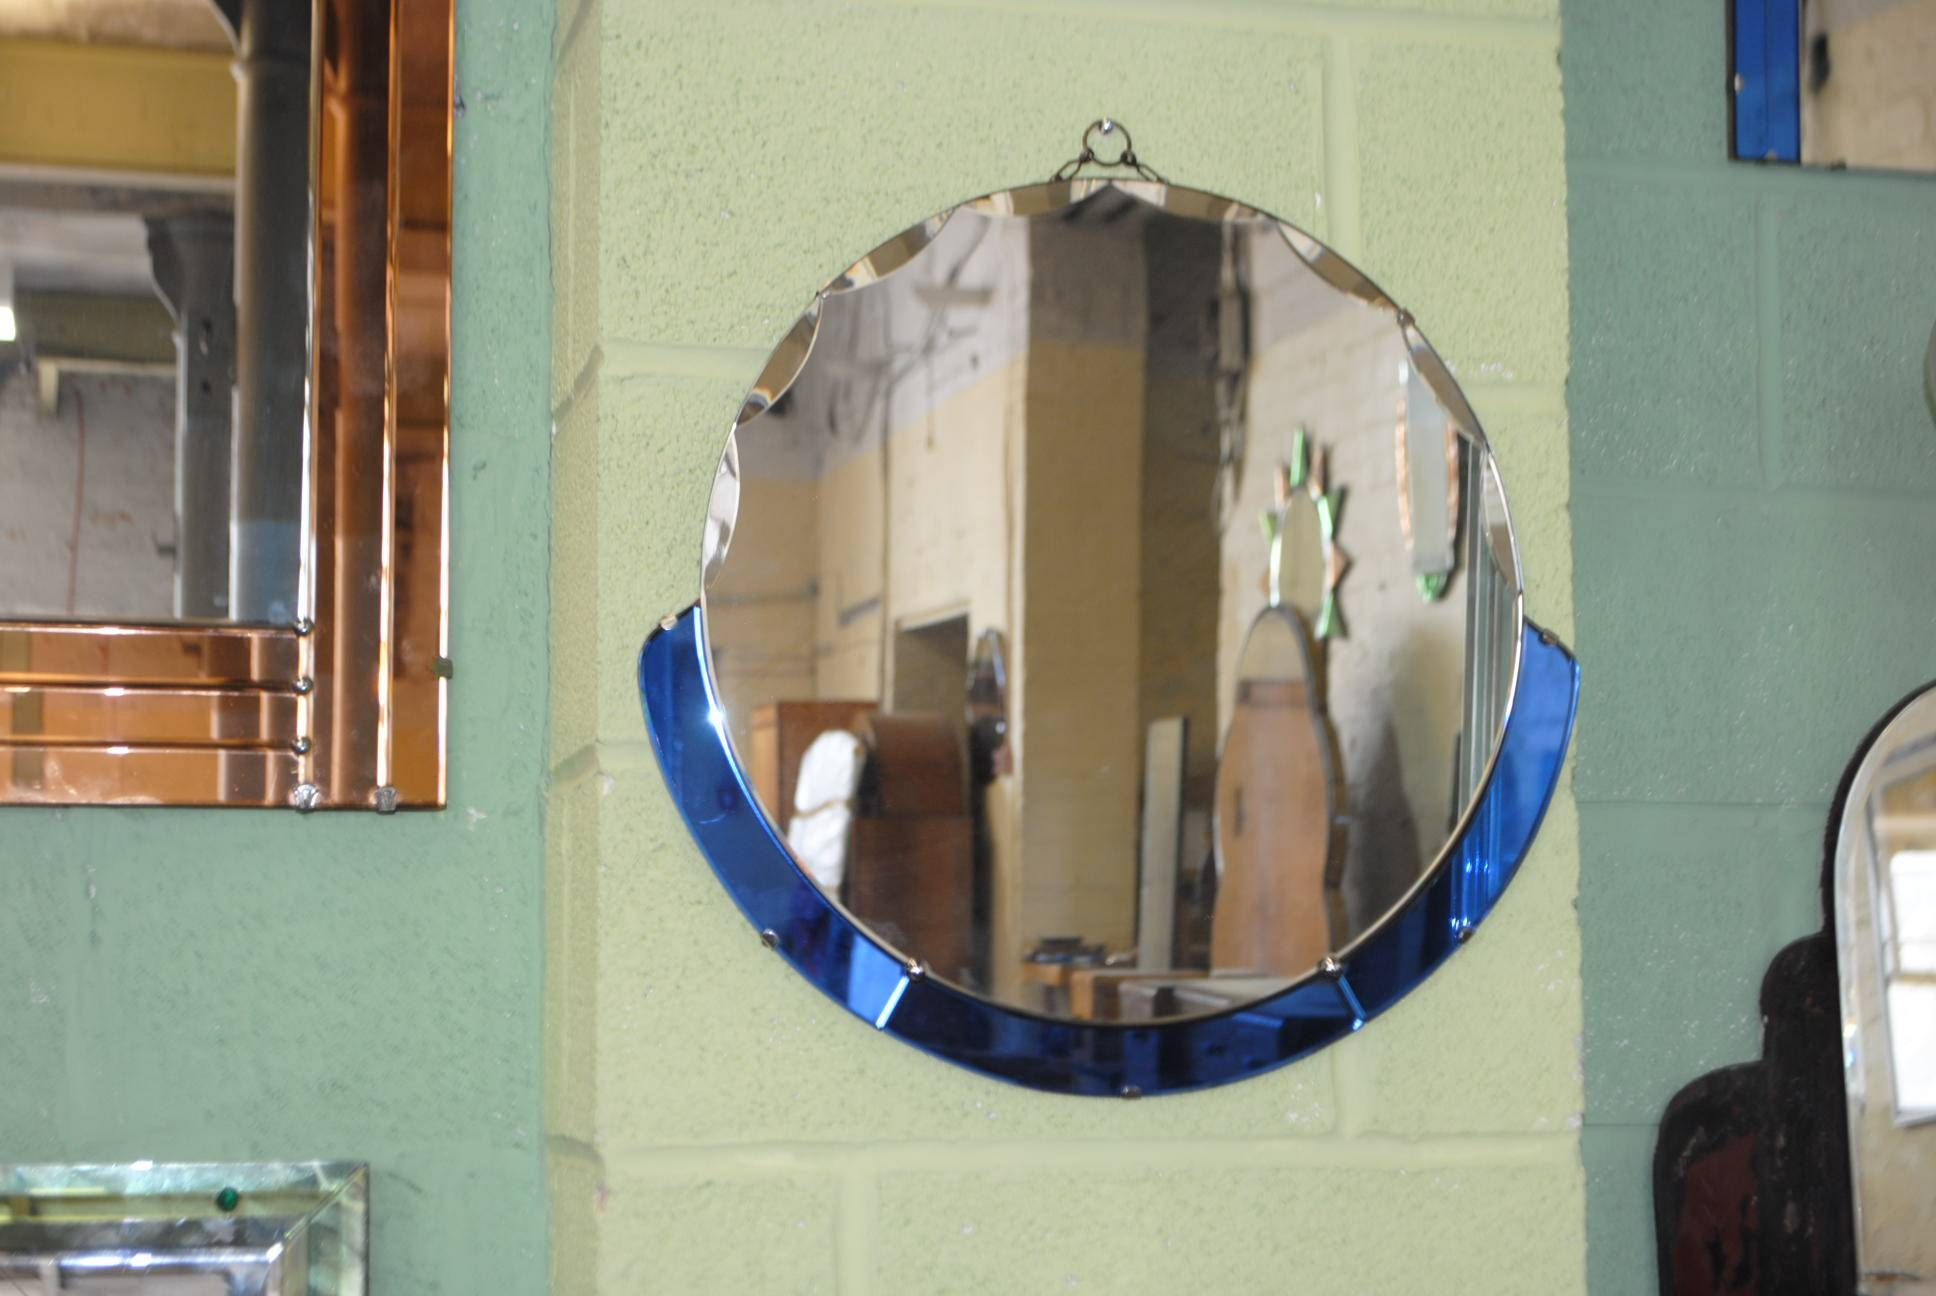 Original Circular And Blue Art Deco Mirror || Cloud 9, Art Deco With Regard To Original Art Deco Mirrors (View 21 of 25)